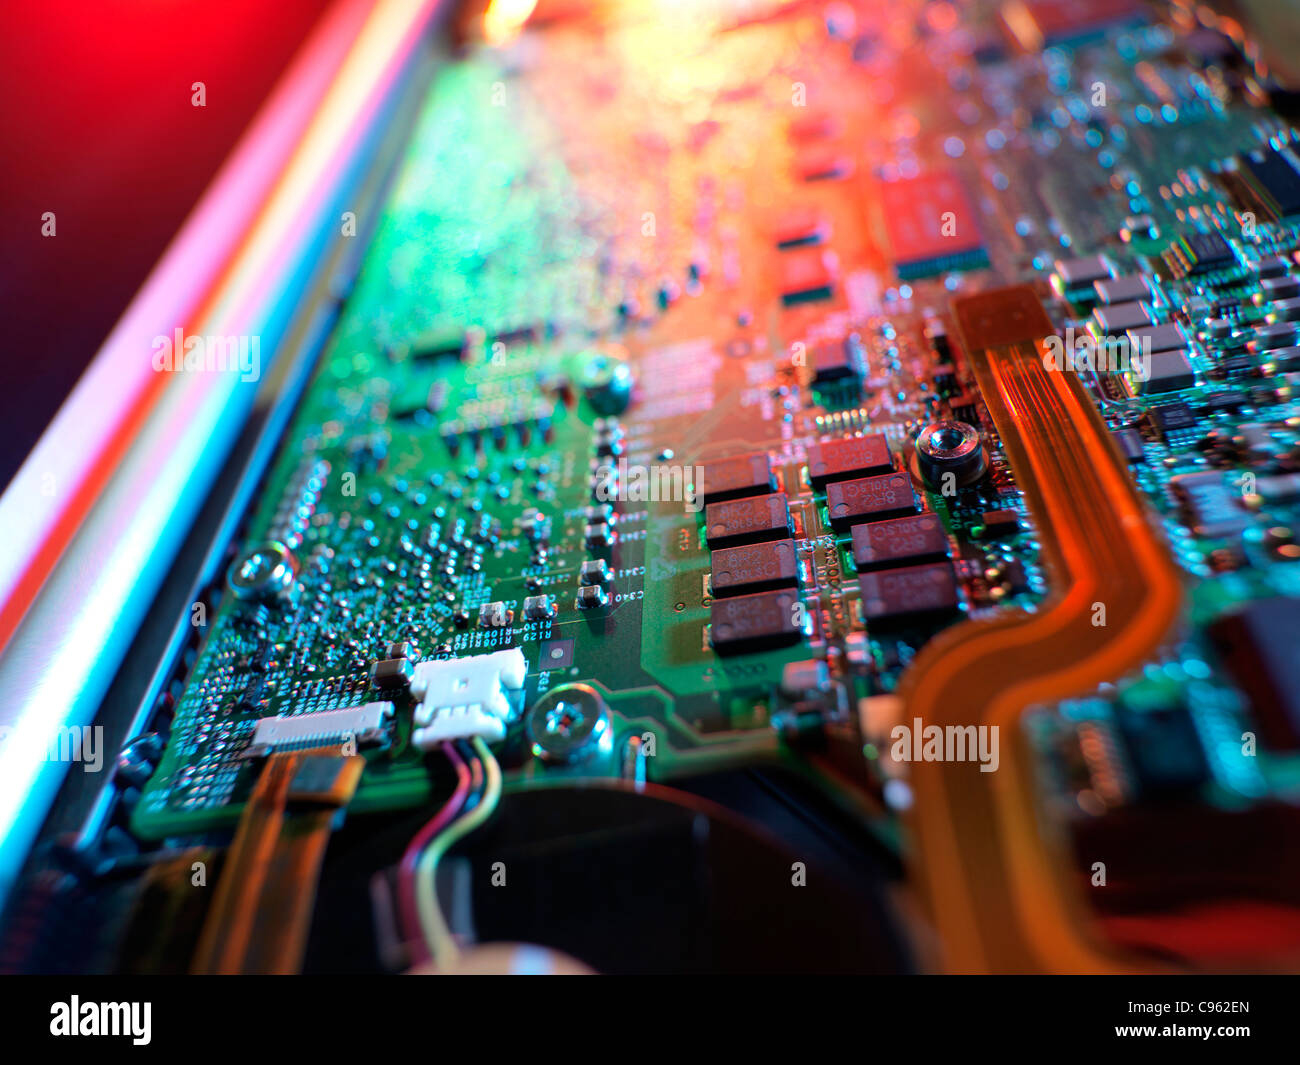 Resister Stock Photos & Resister Stock Images - Alamy